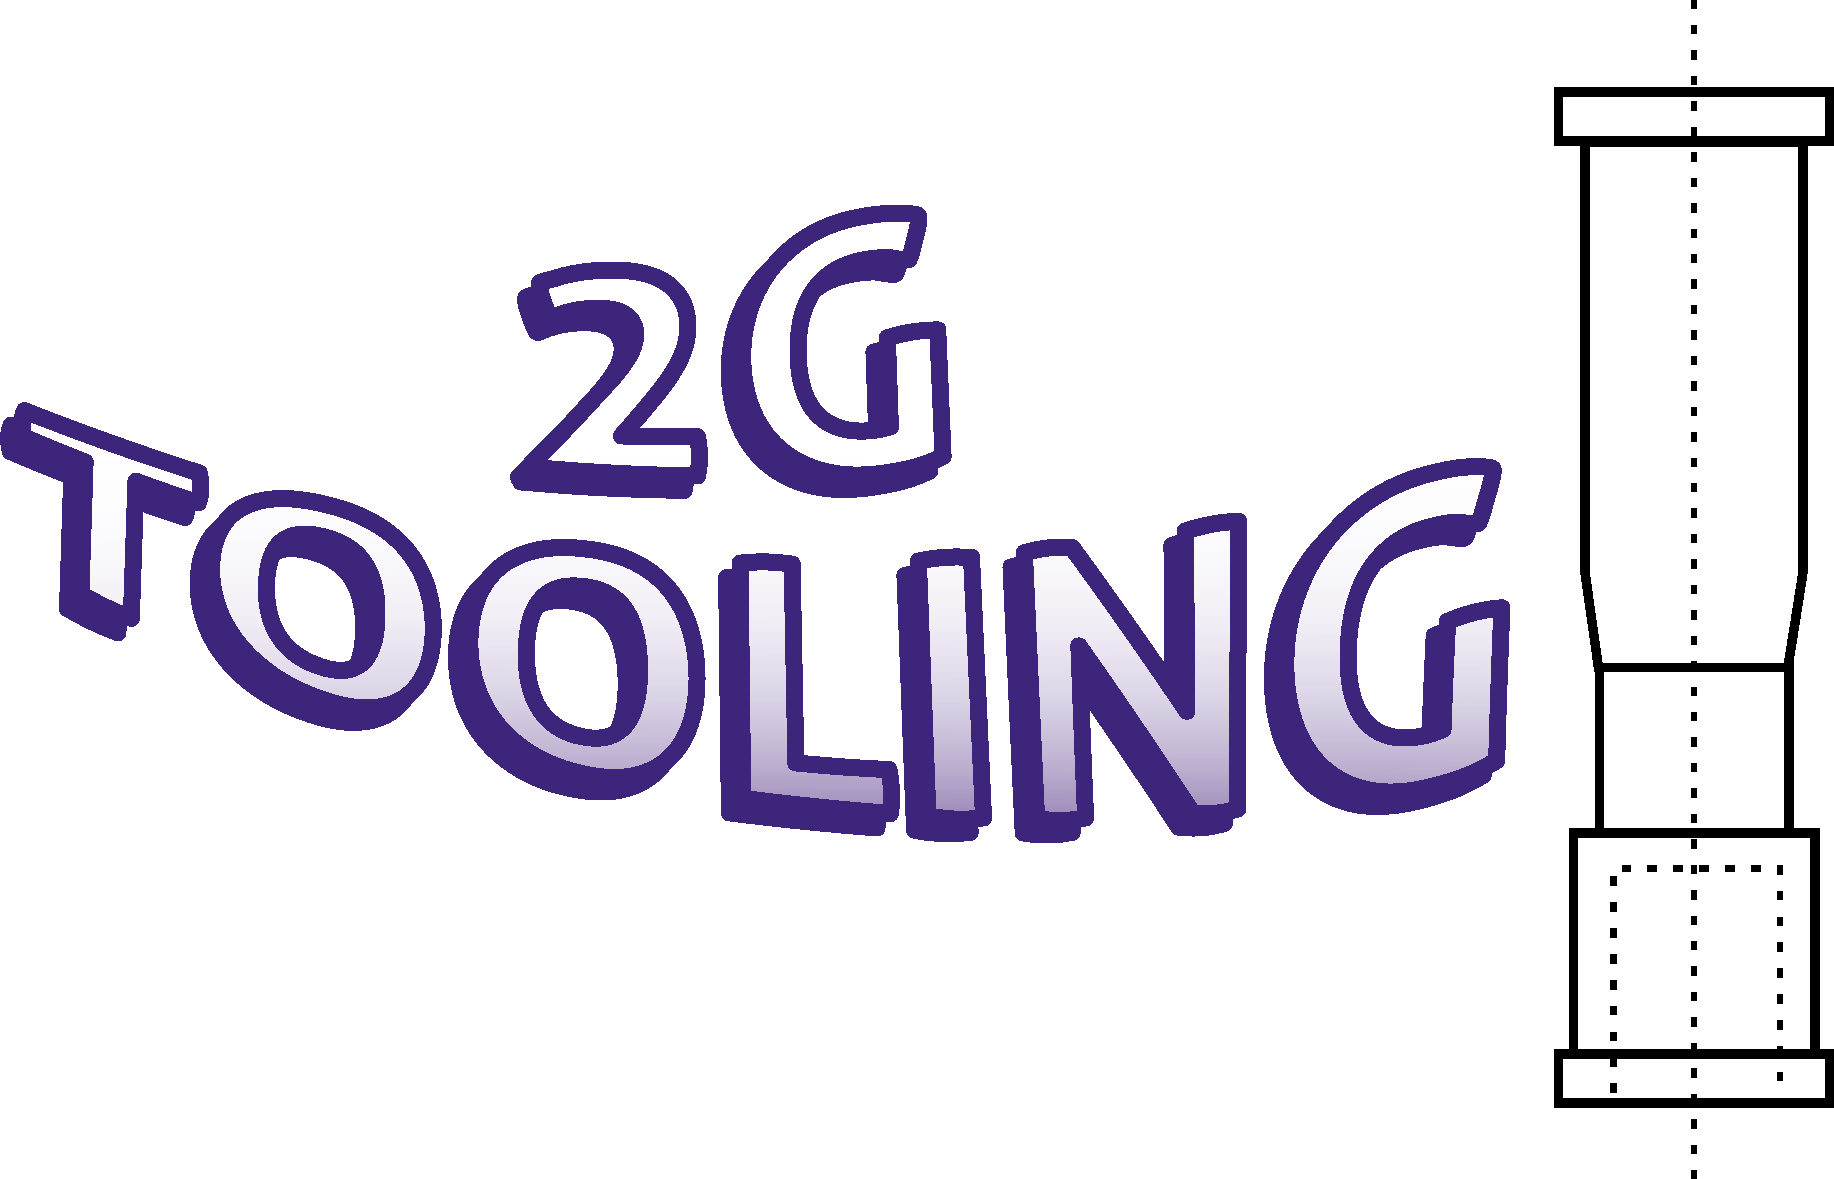 2G Tooling